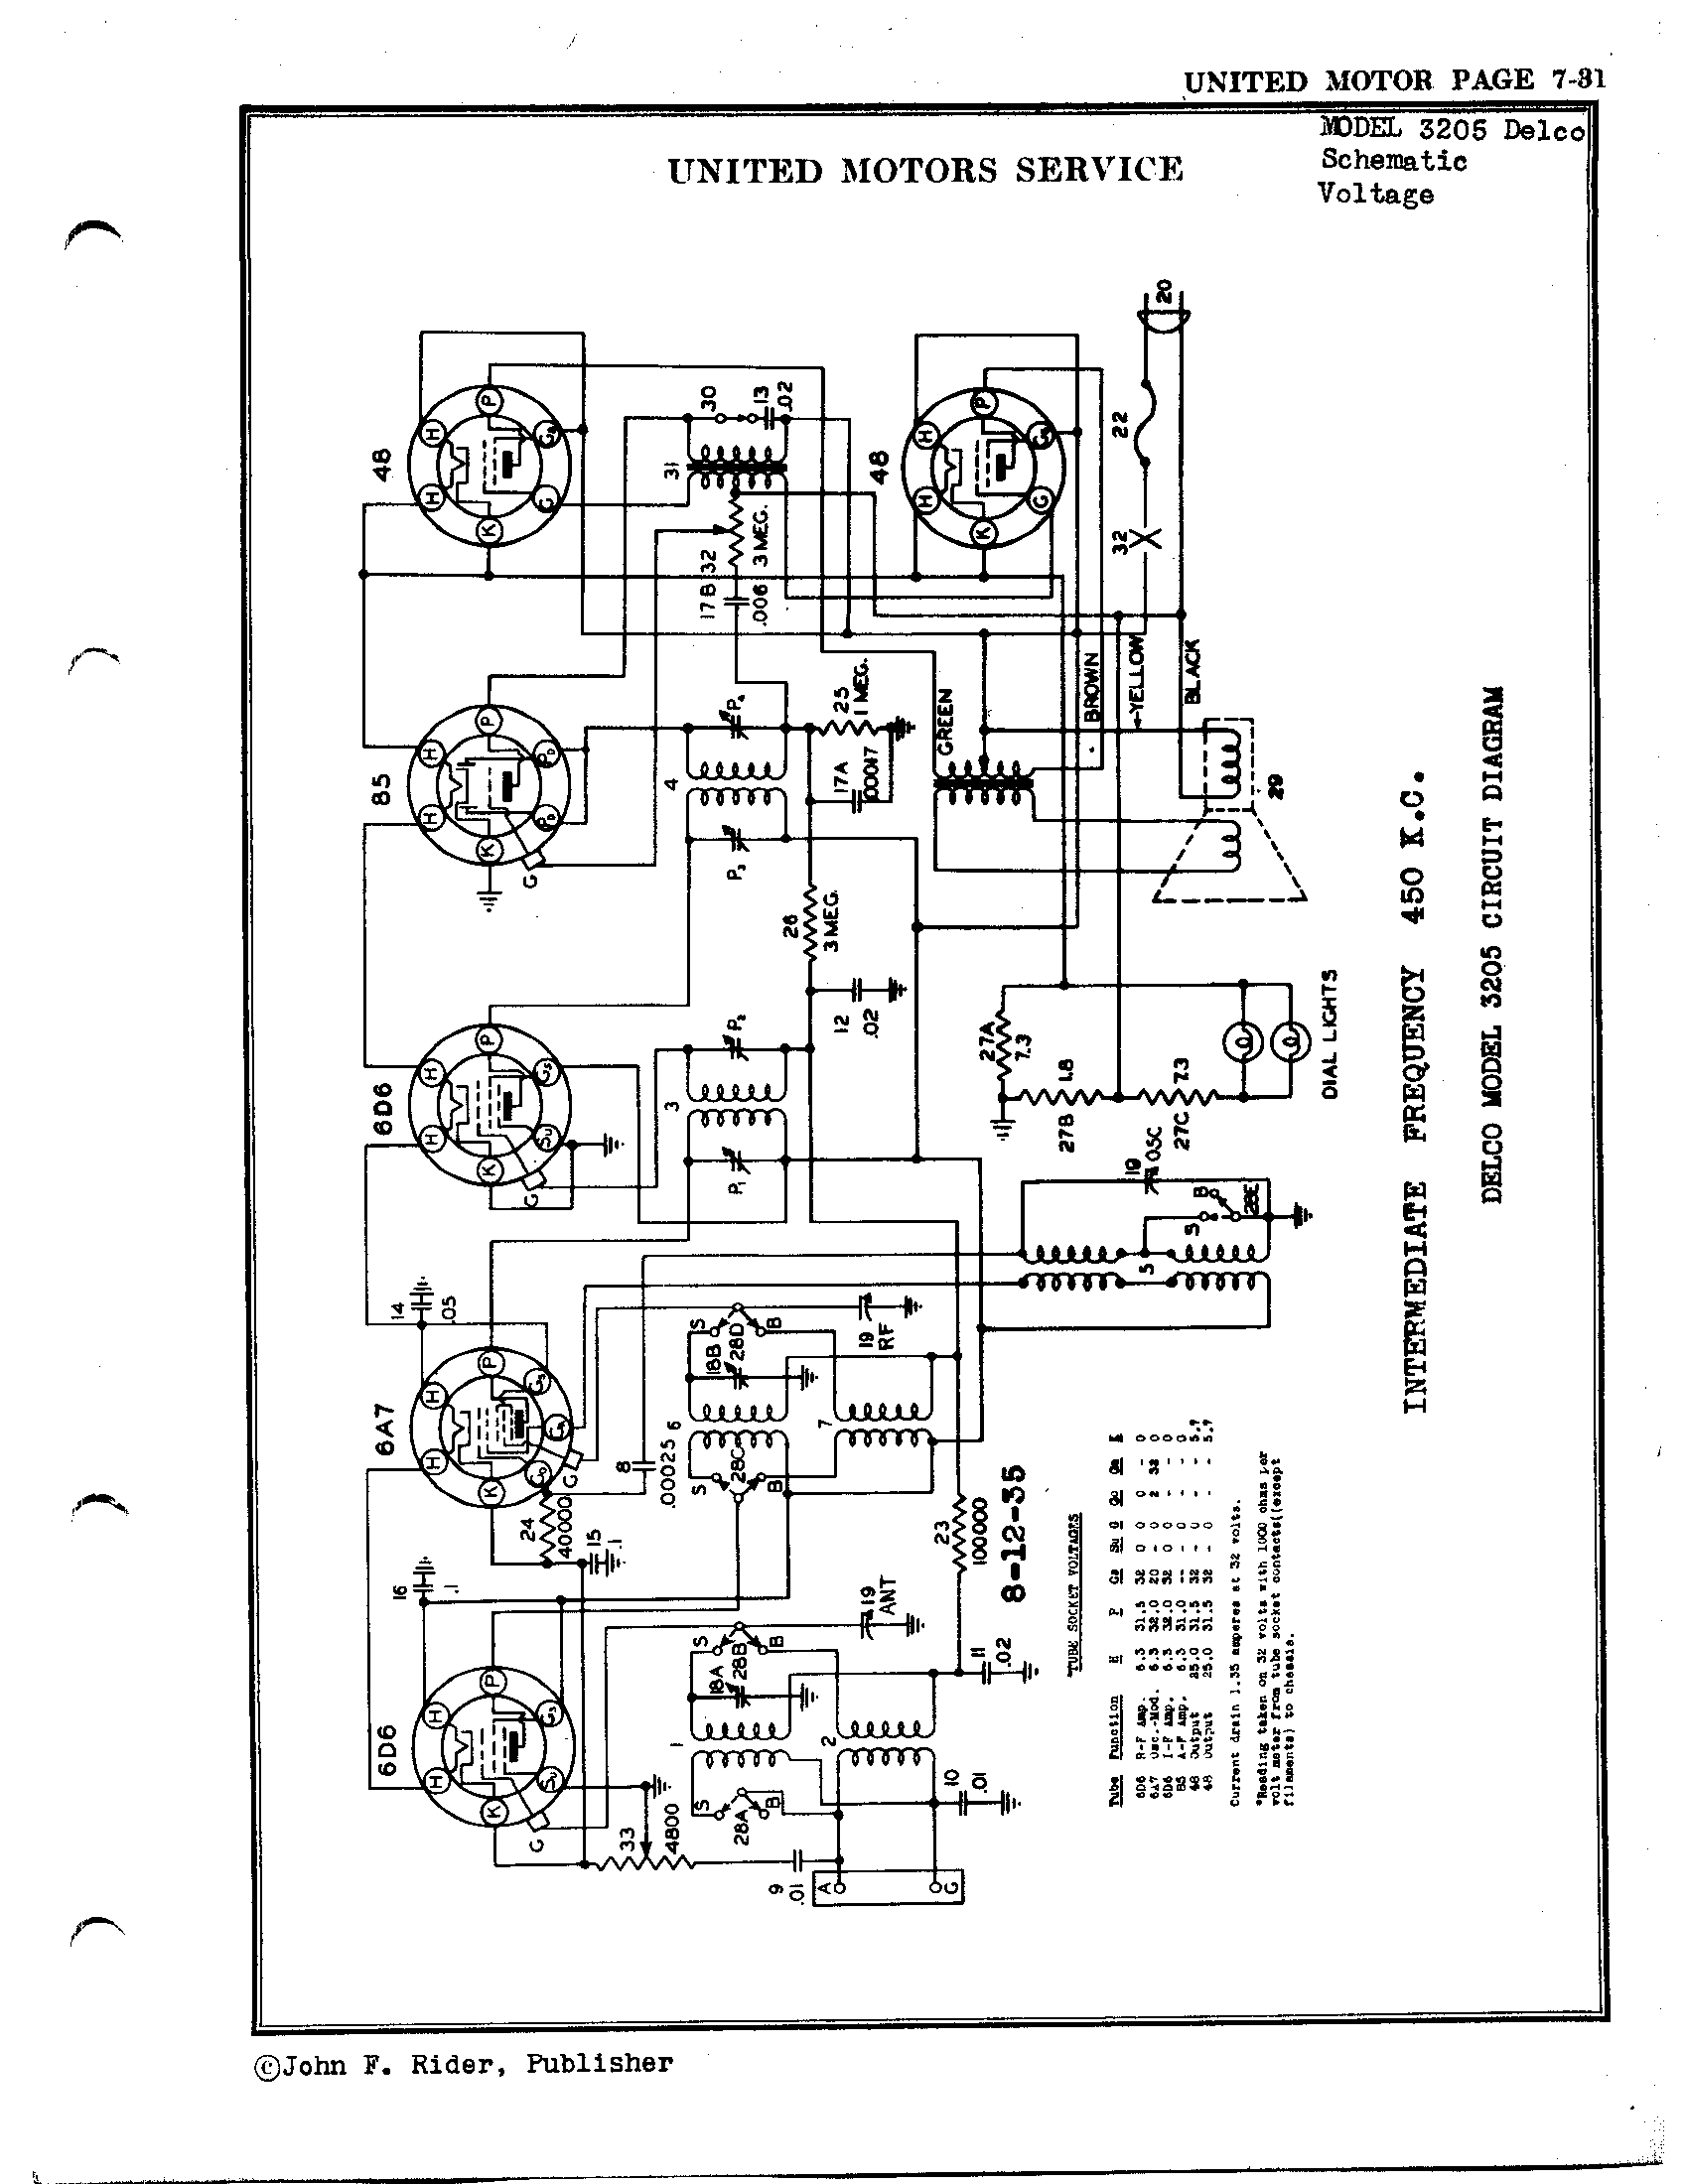 Delco Model 16221029 Wiring Schematic Diagram Libraries 09354155 Librarydelco